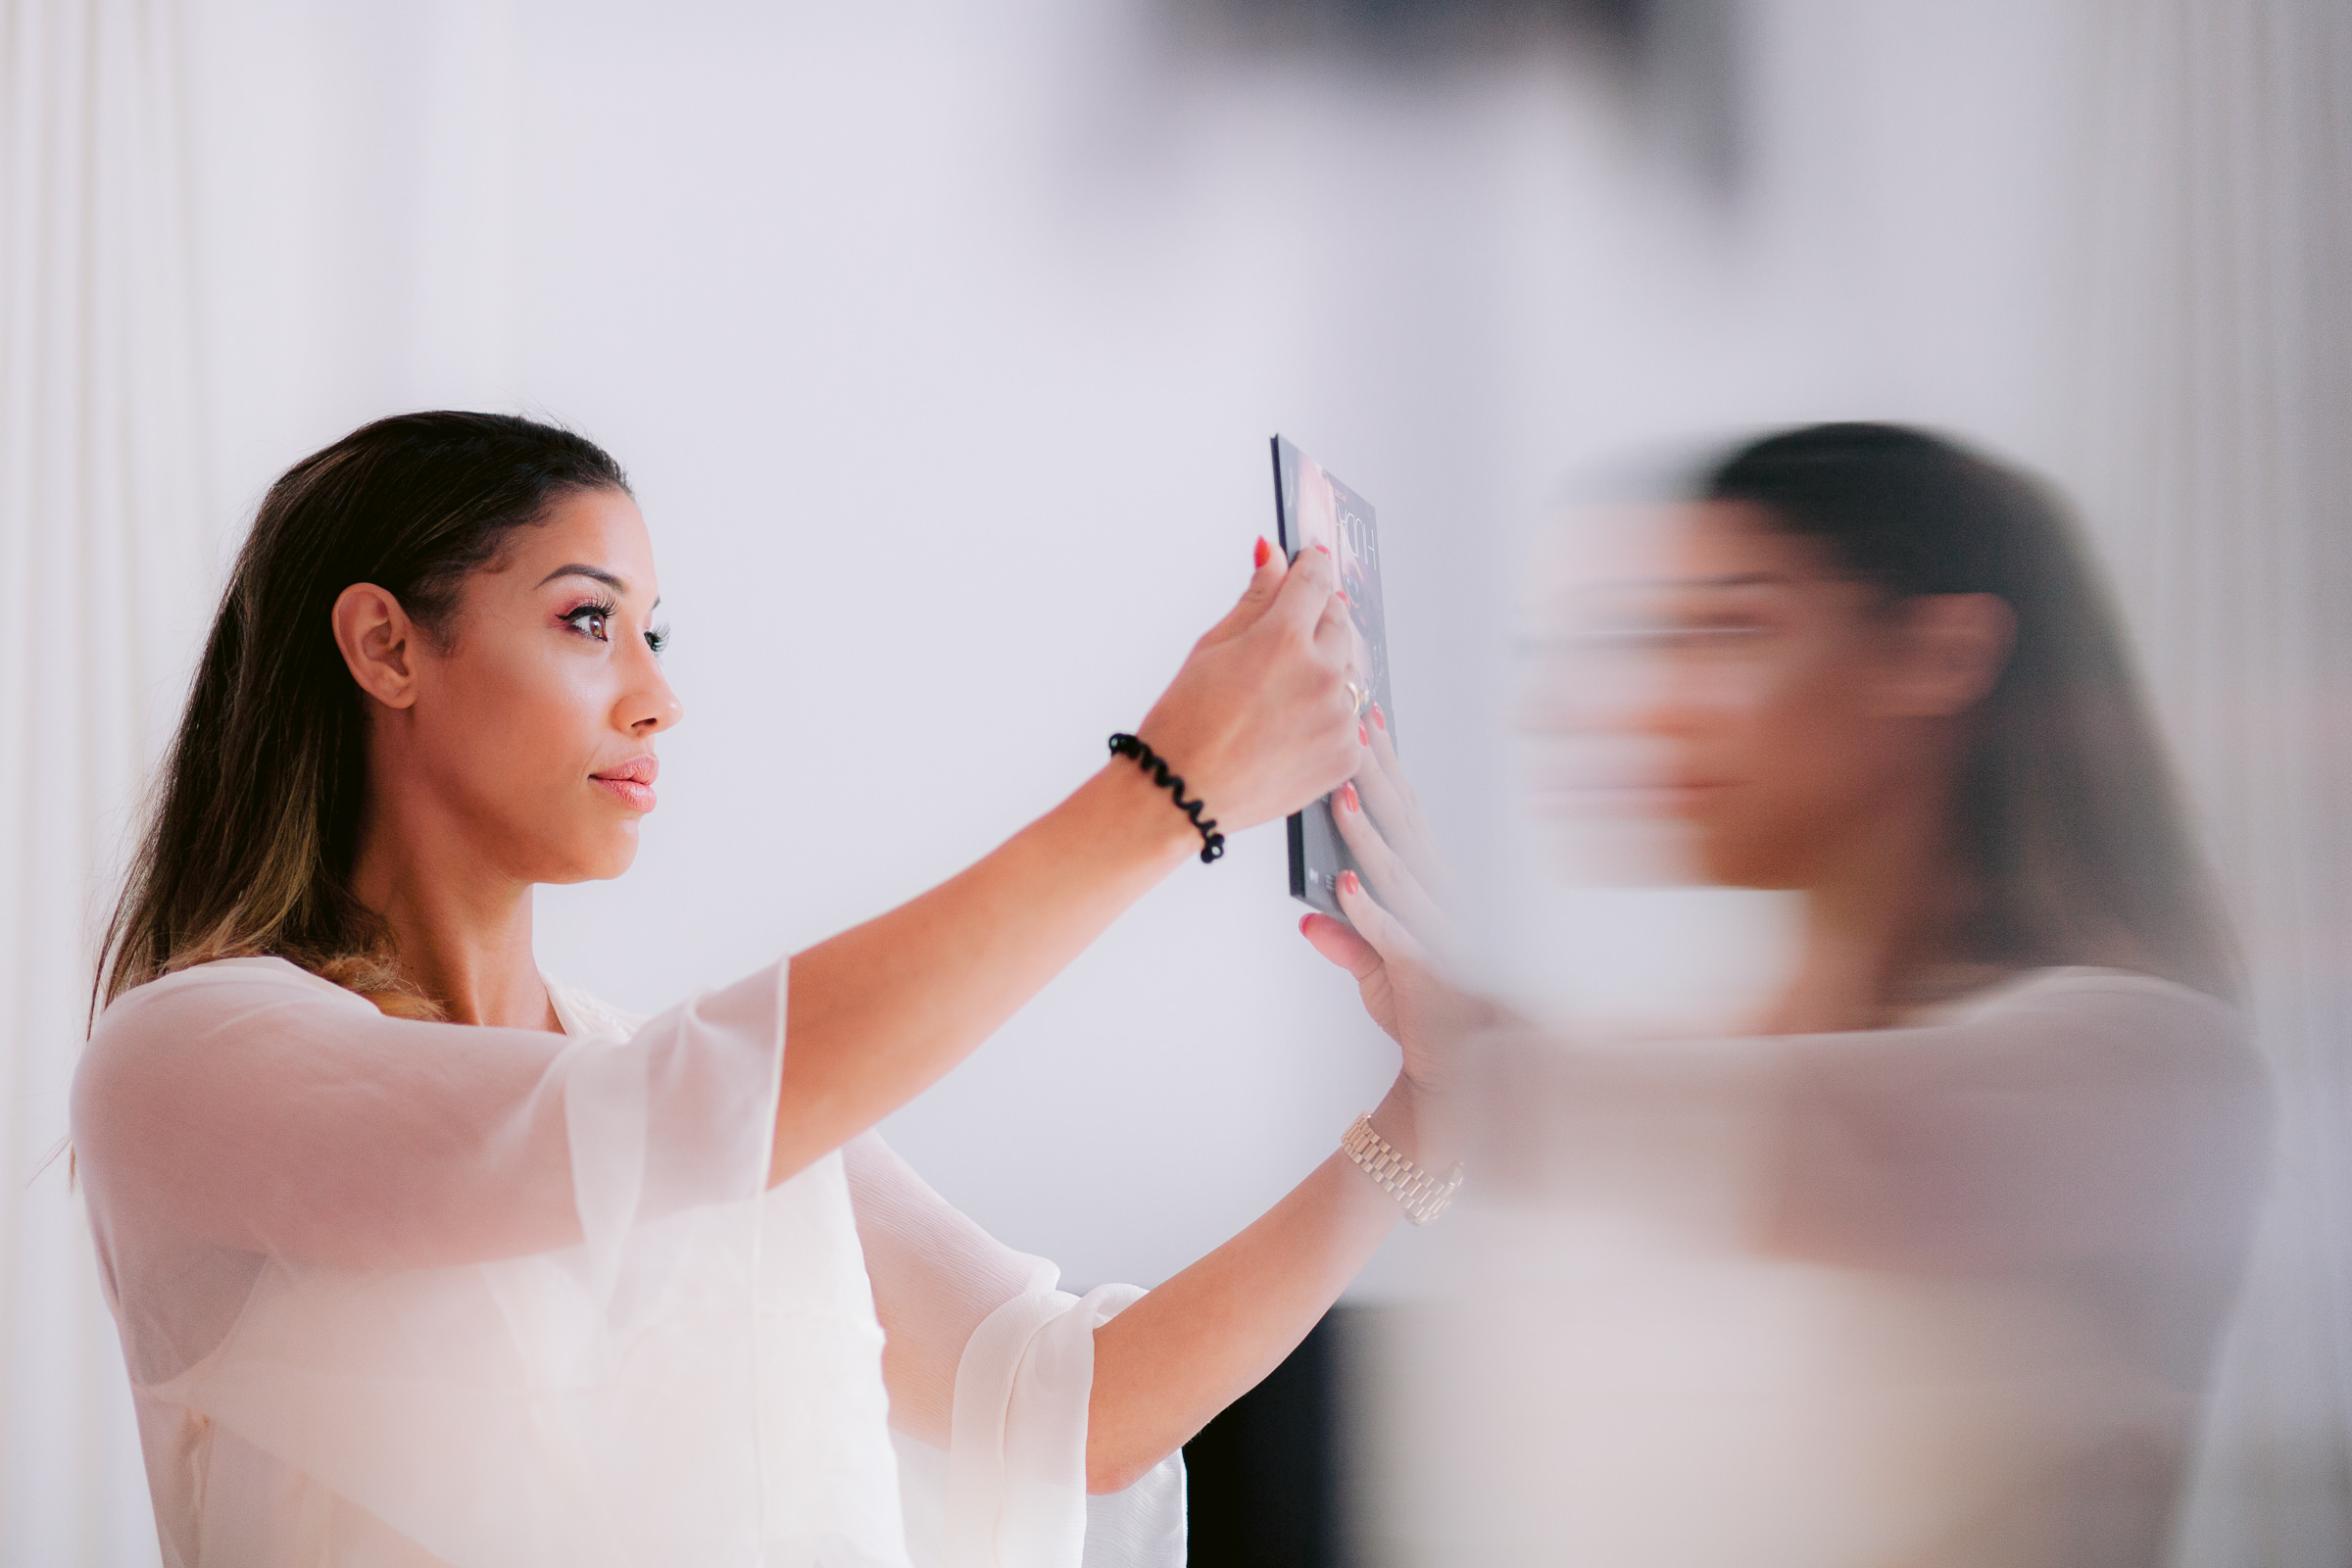 Bride with hand mirror blurred reflection - photo by Peter van der Lingen Wedding Photography